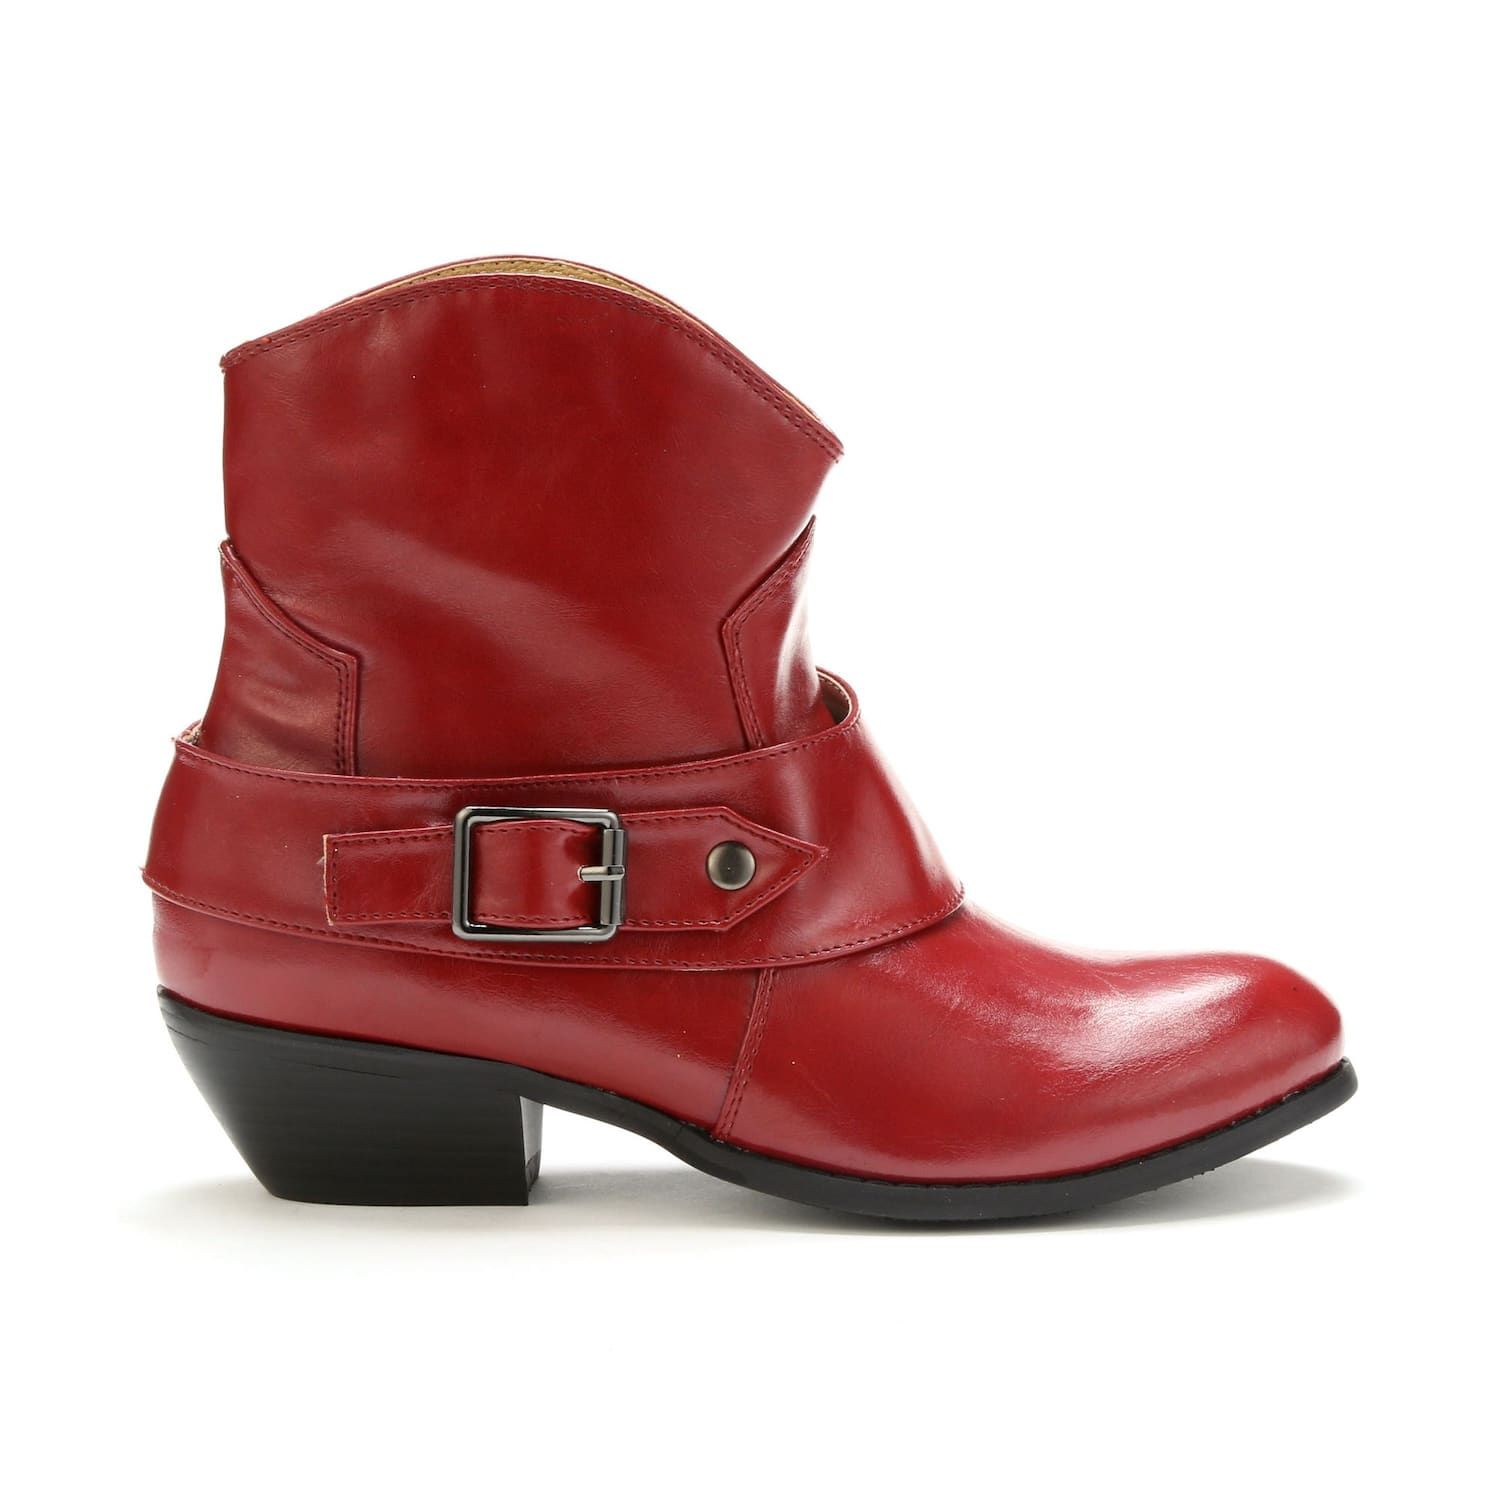 0d9e928b1df Western Short Boot by Seventh Avenue   Monroe & Main   Red Cowgirl ...